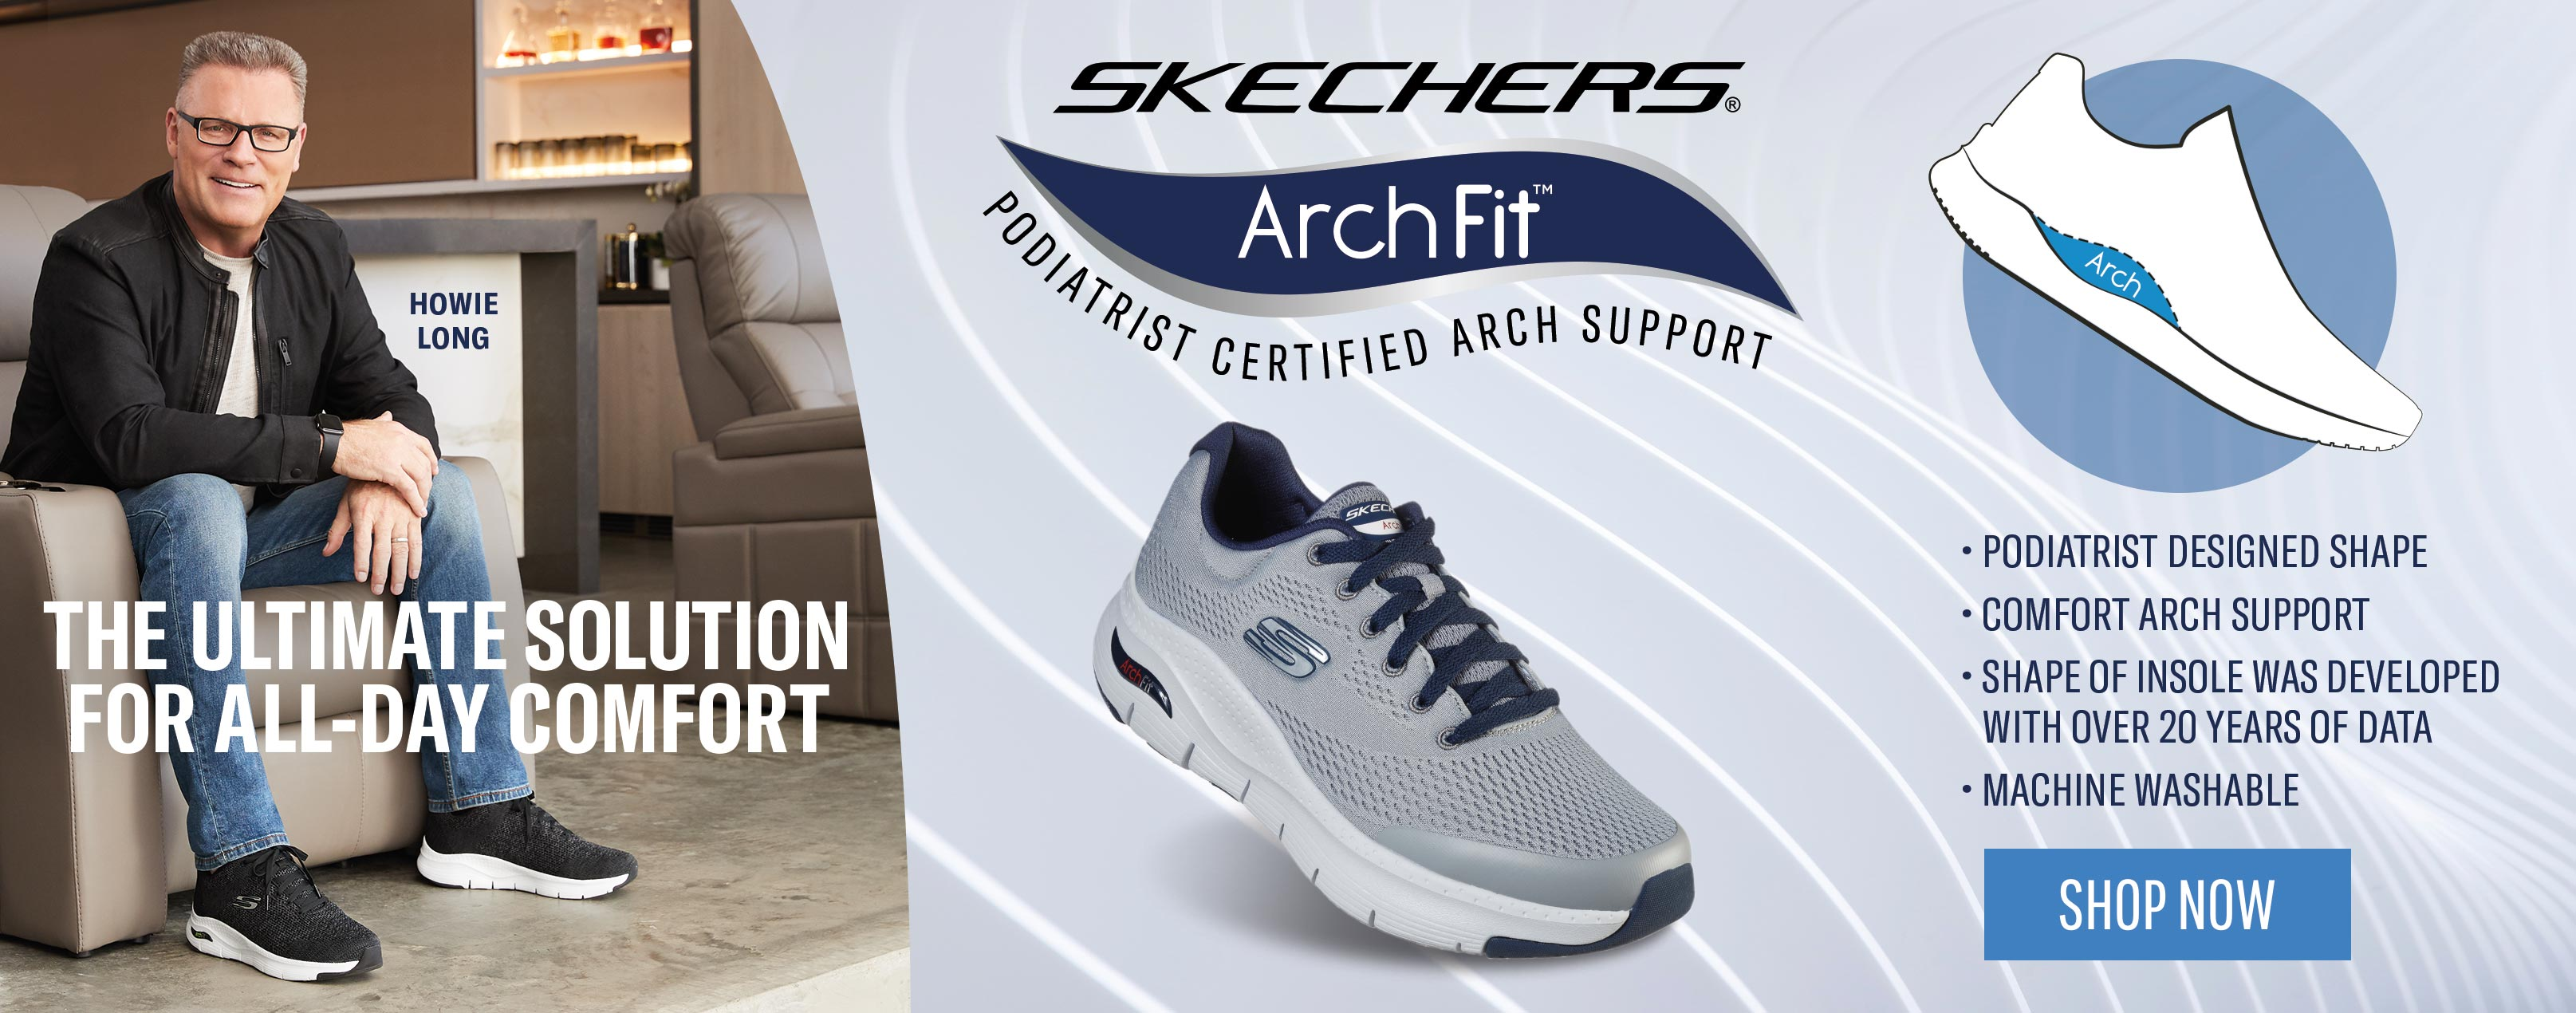 which stores sell skechers